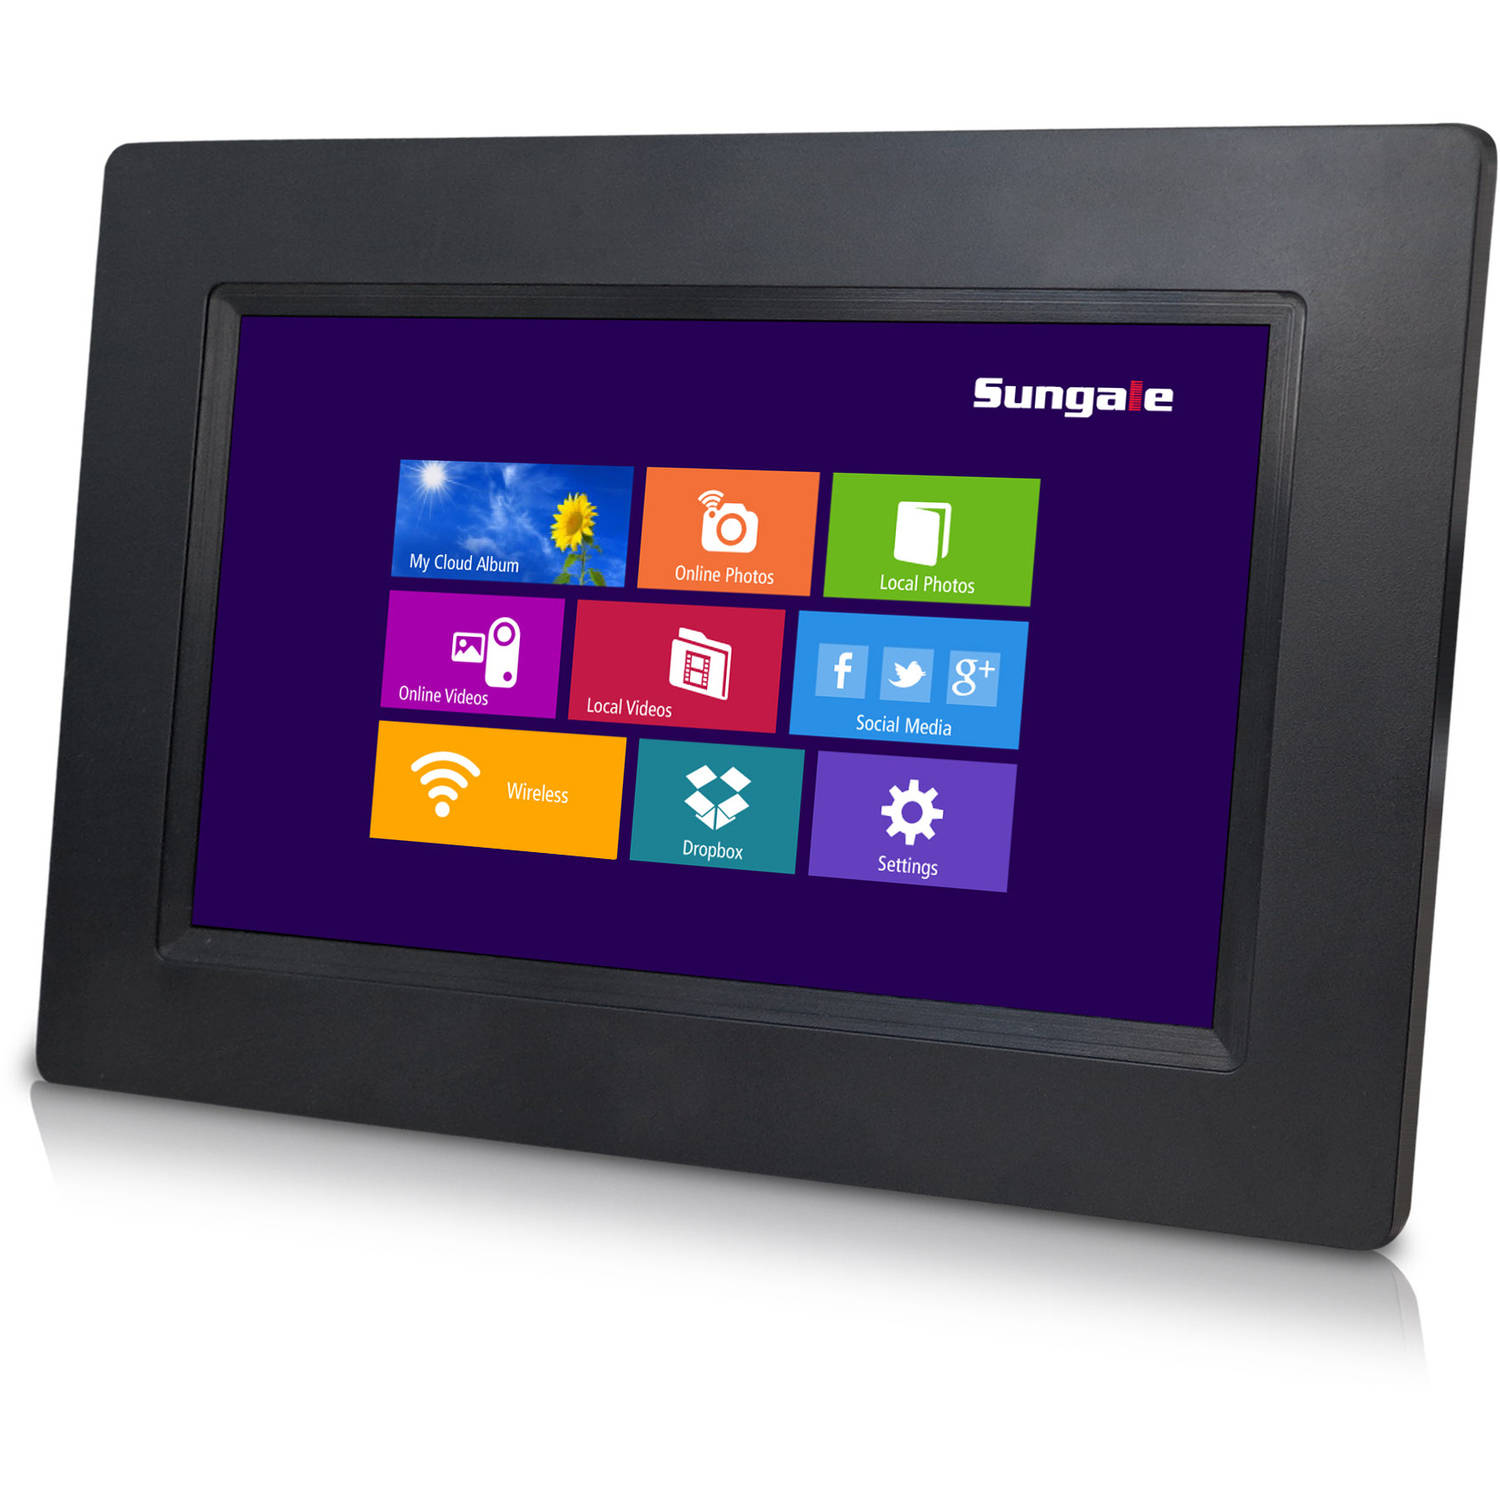 Sungale Cpf708 7 Cloud Touchscreen Digital Photo Frame Walmartcom